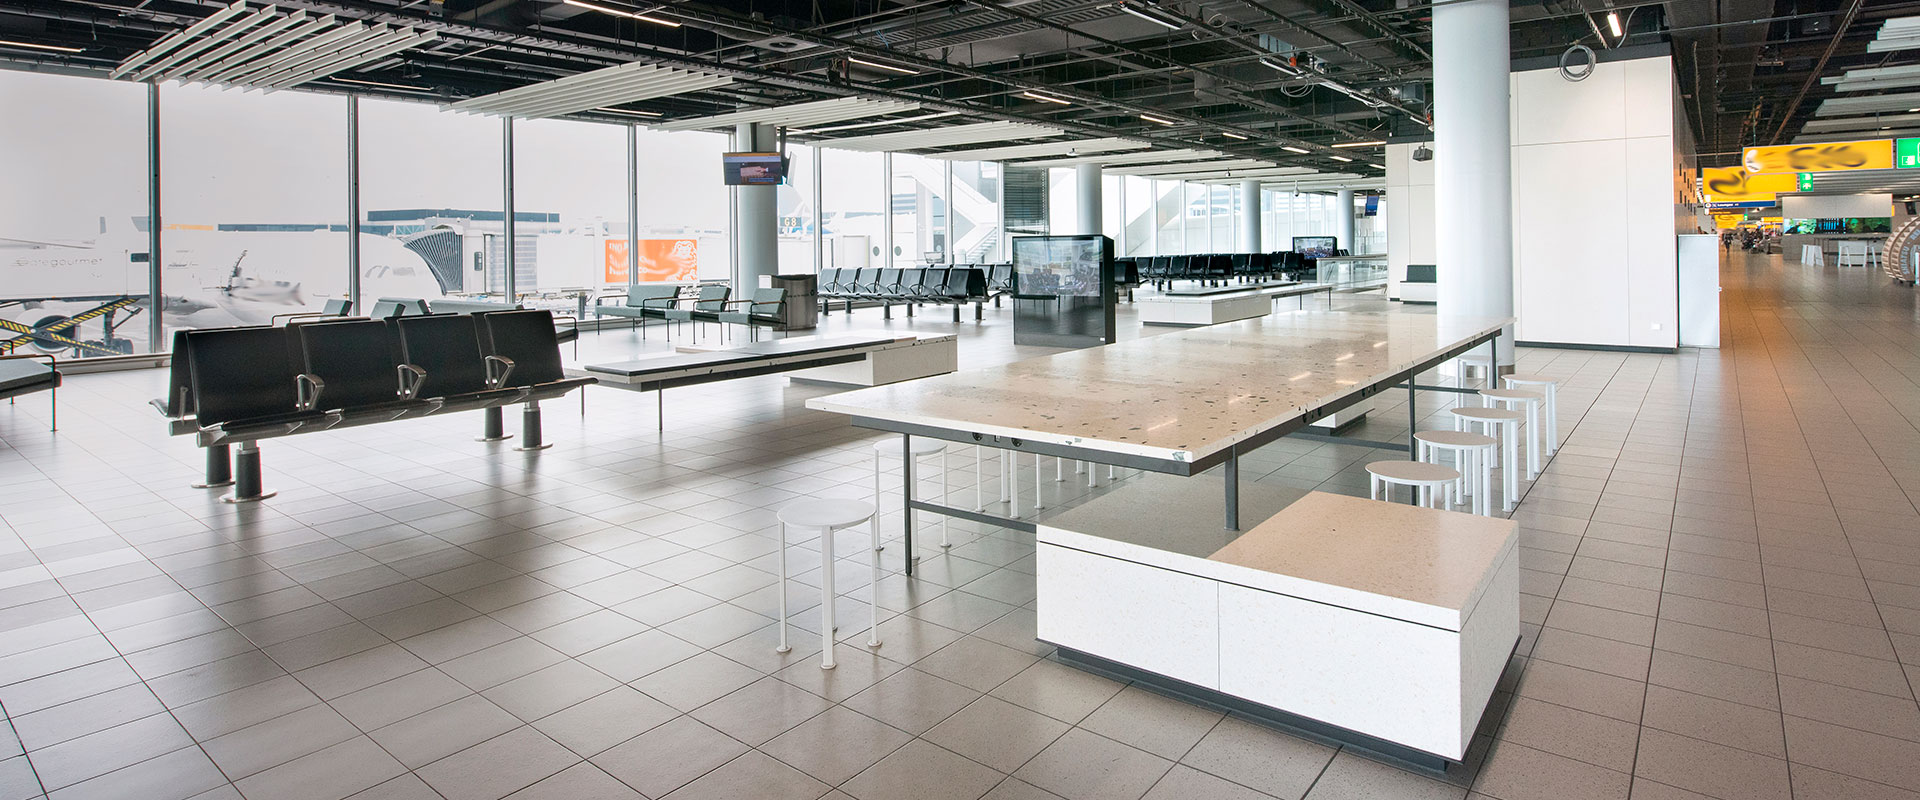 AGGLOTECH-progetto-schiphol-airport-slider-3